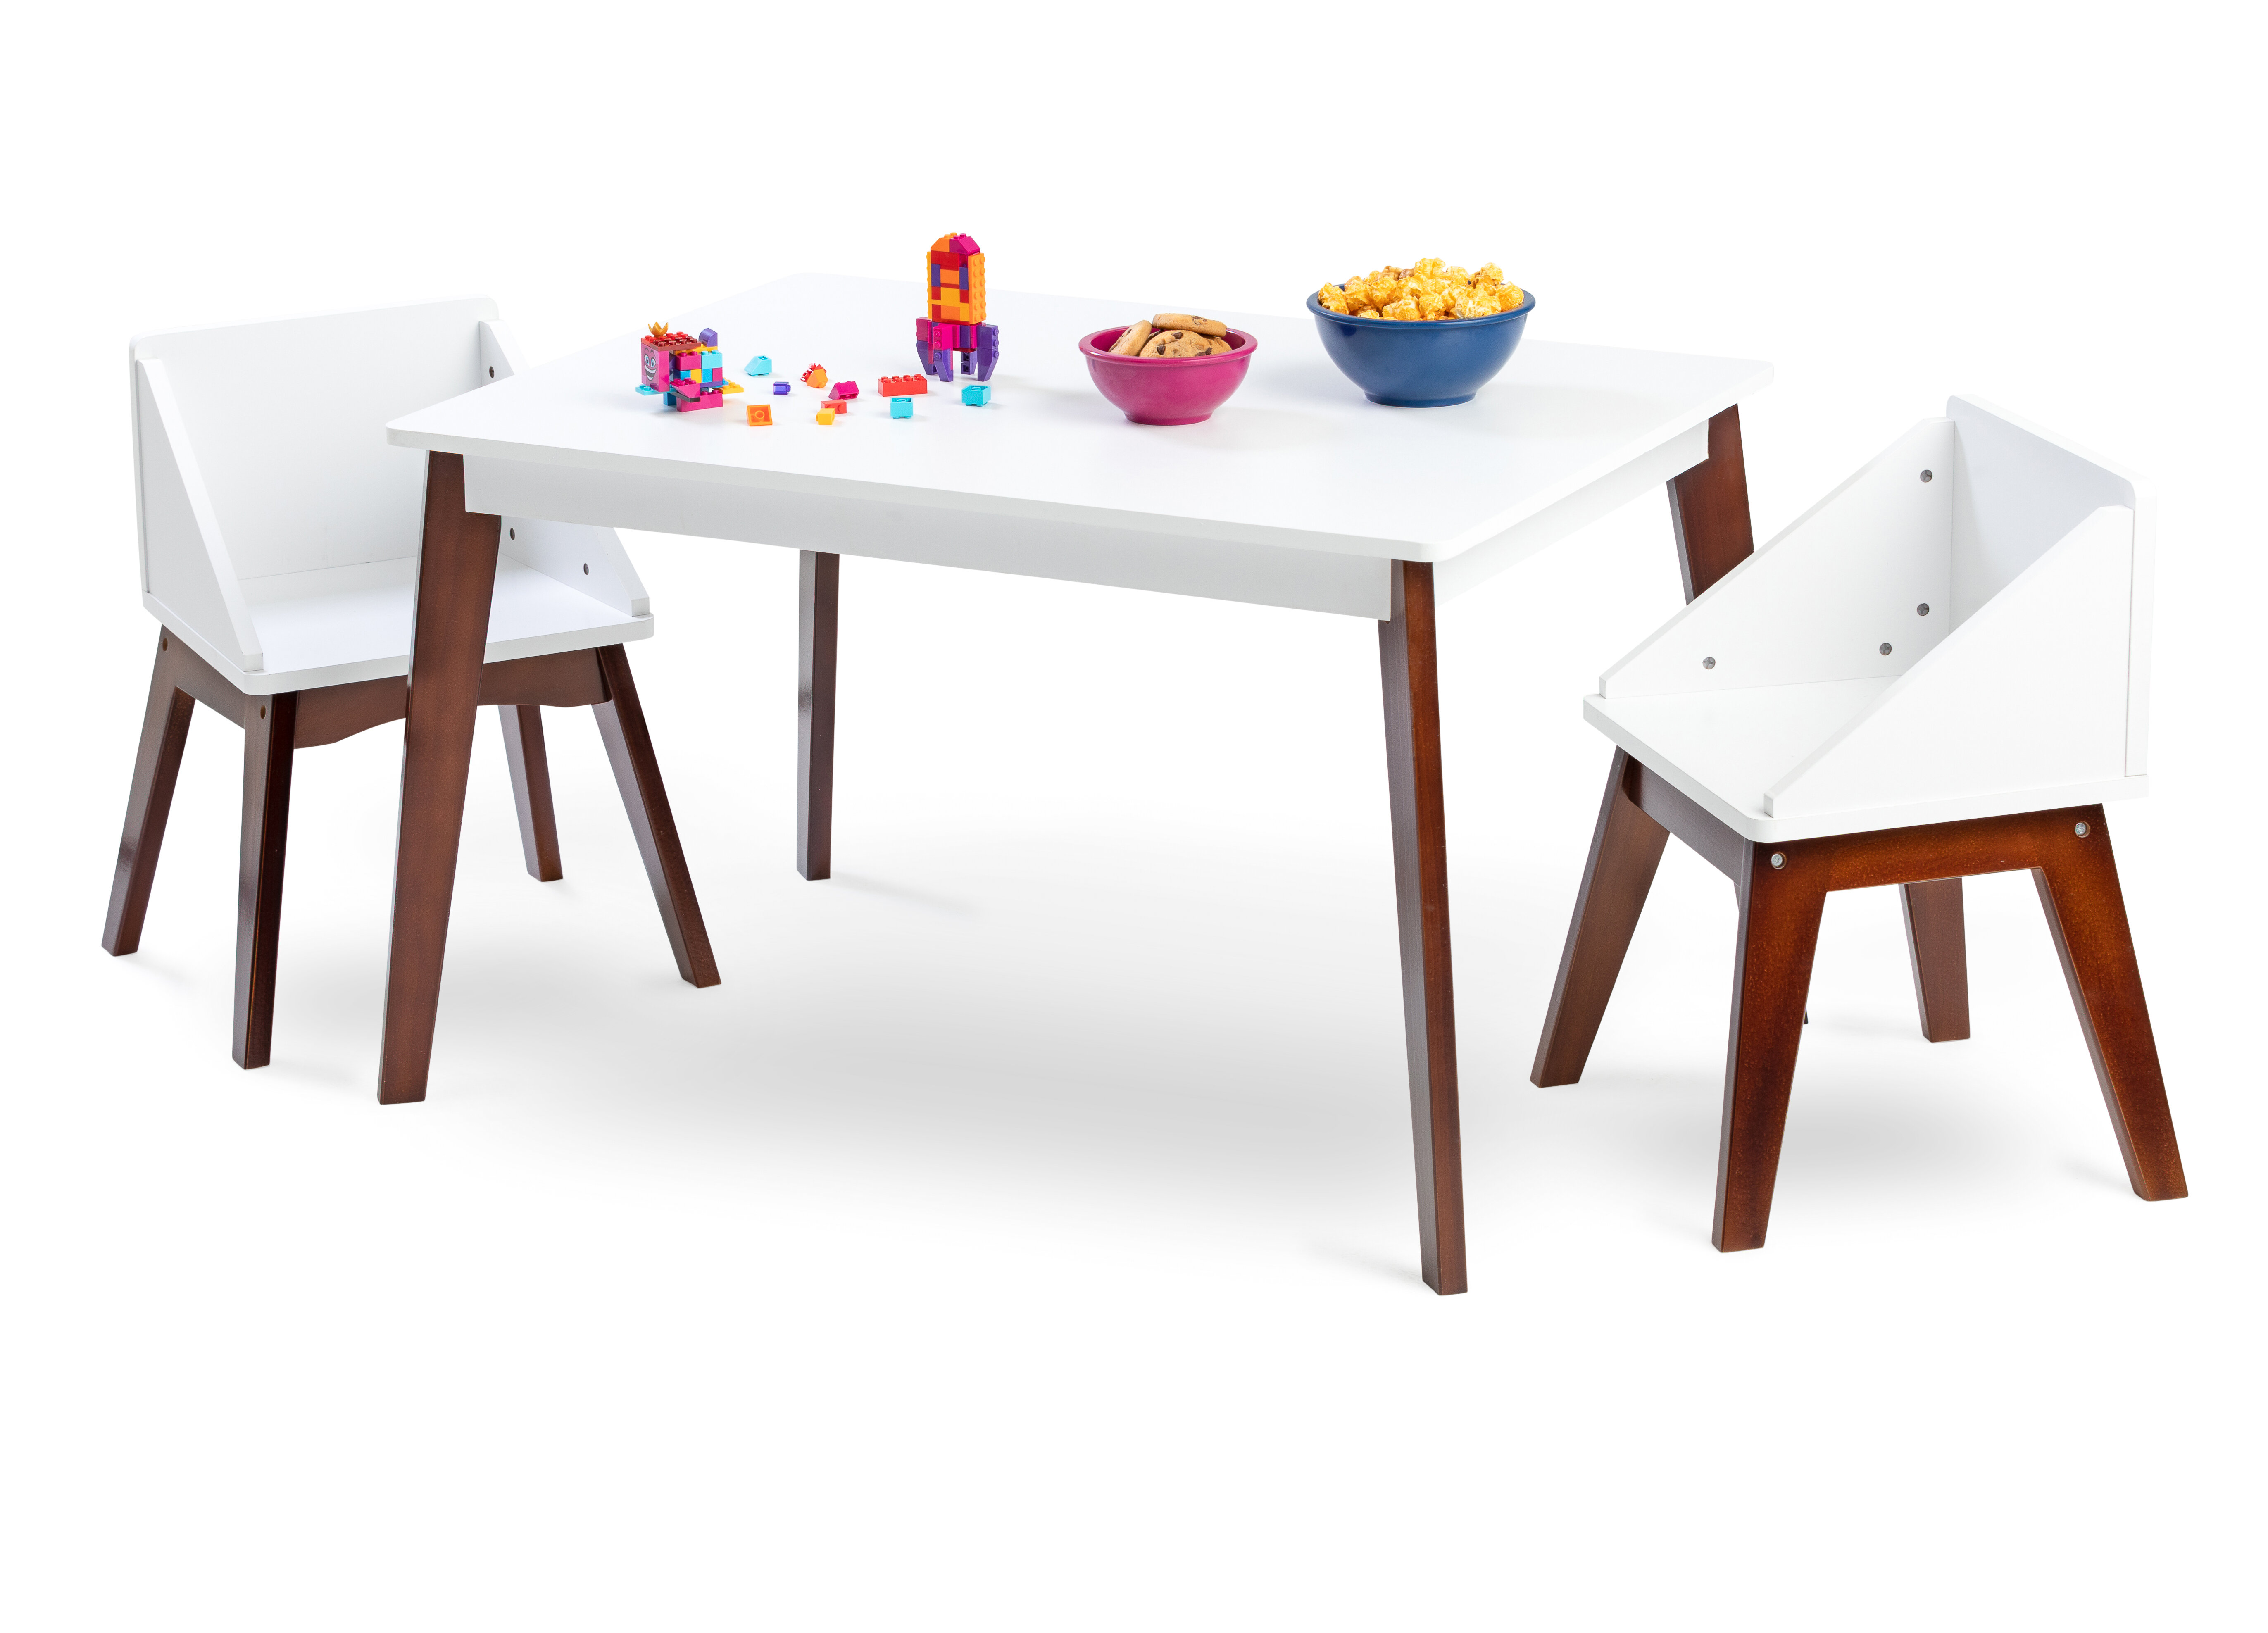 Zoomie Kids Wiersma Modern Kids 3 Piece Play Table And Chair Set Reviews